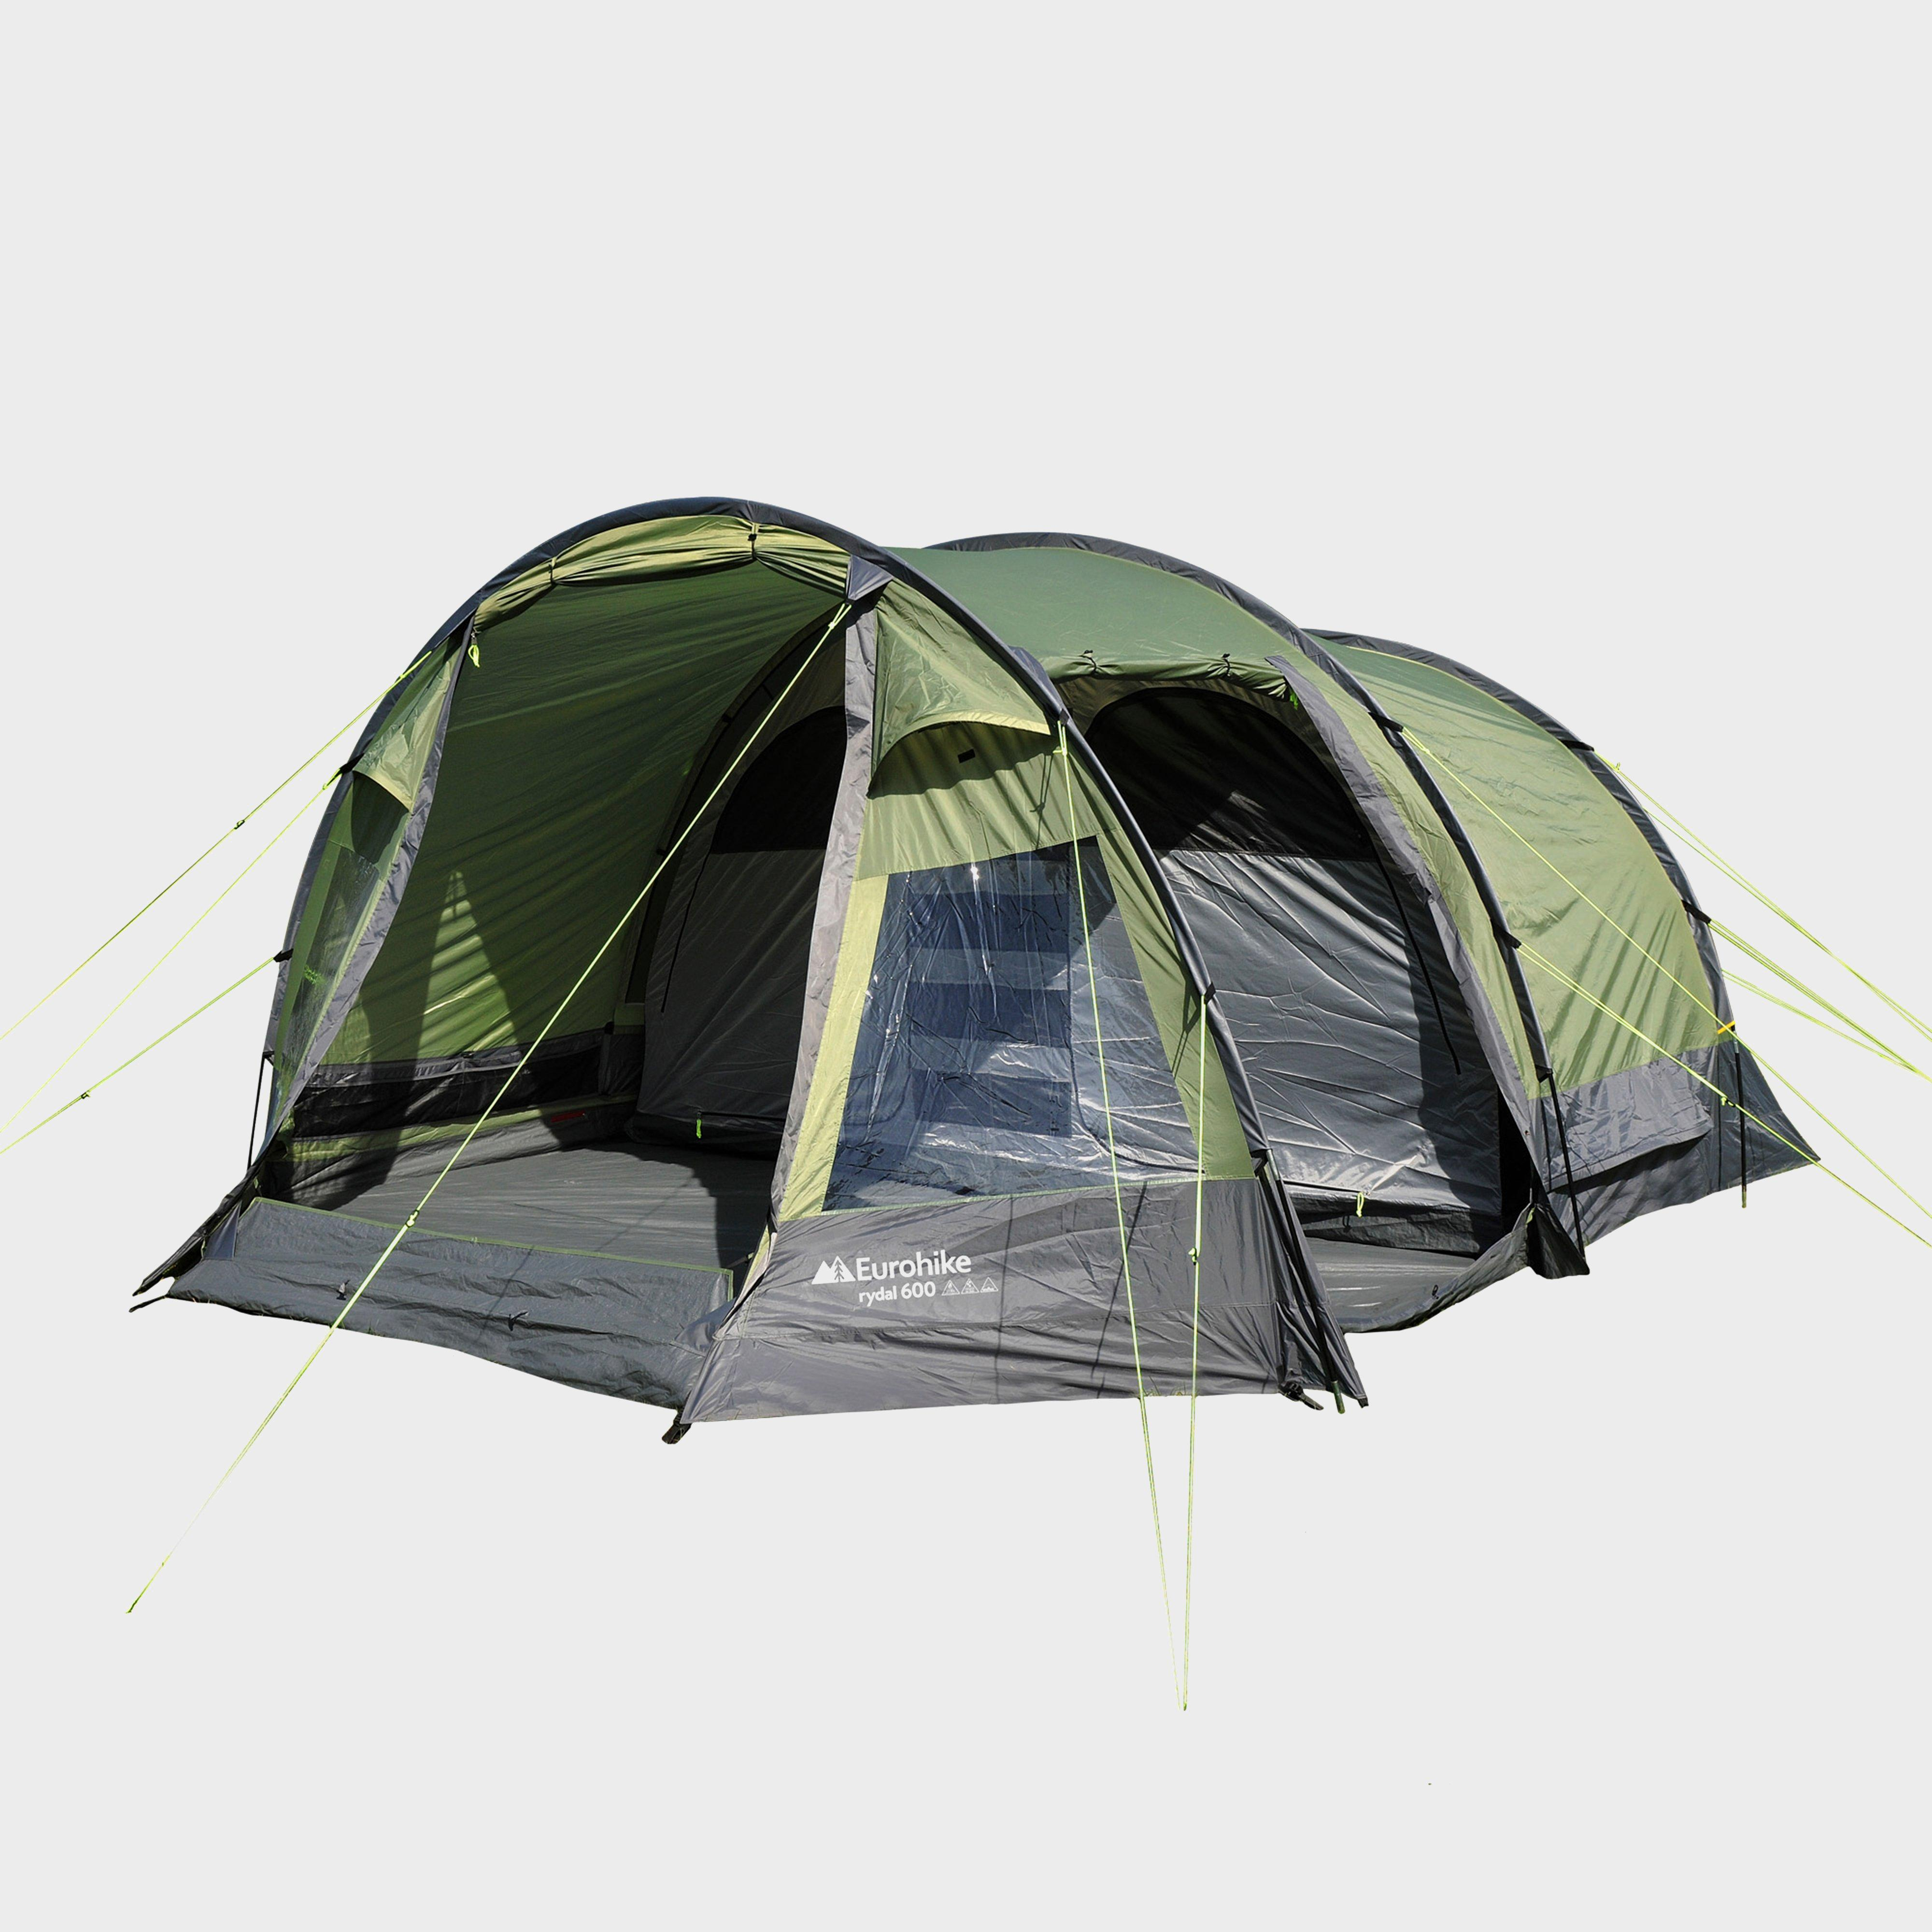 Rydal 600 Family Tent & Eurohike Rydal 600 Family Tent